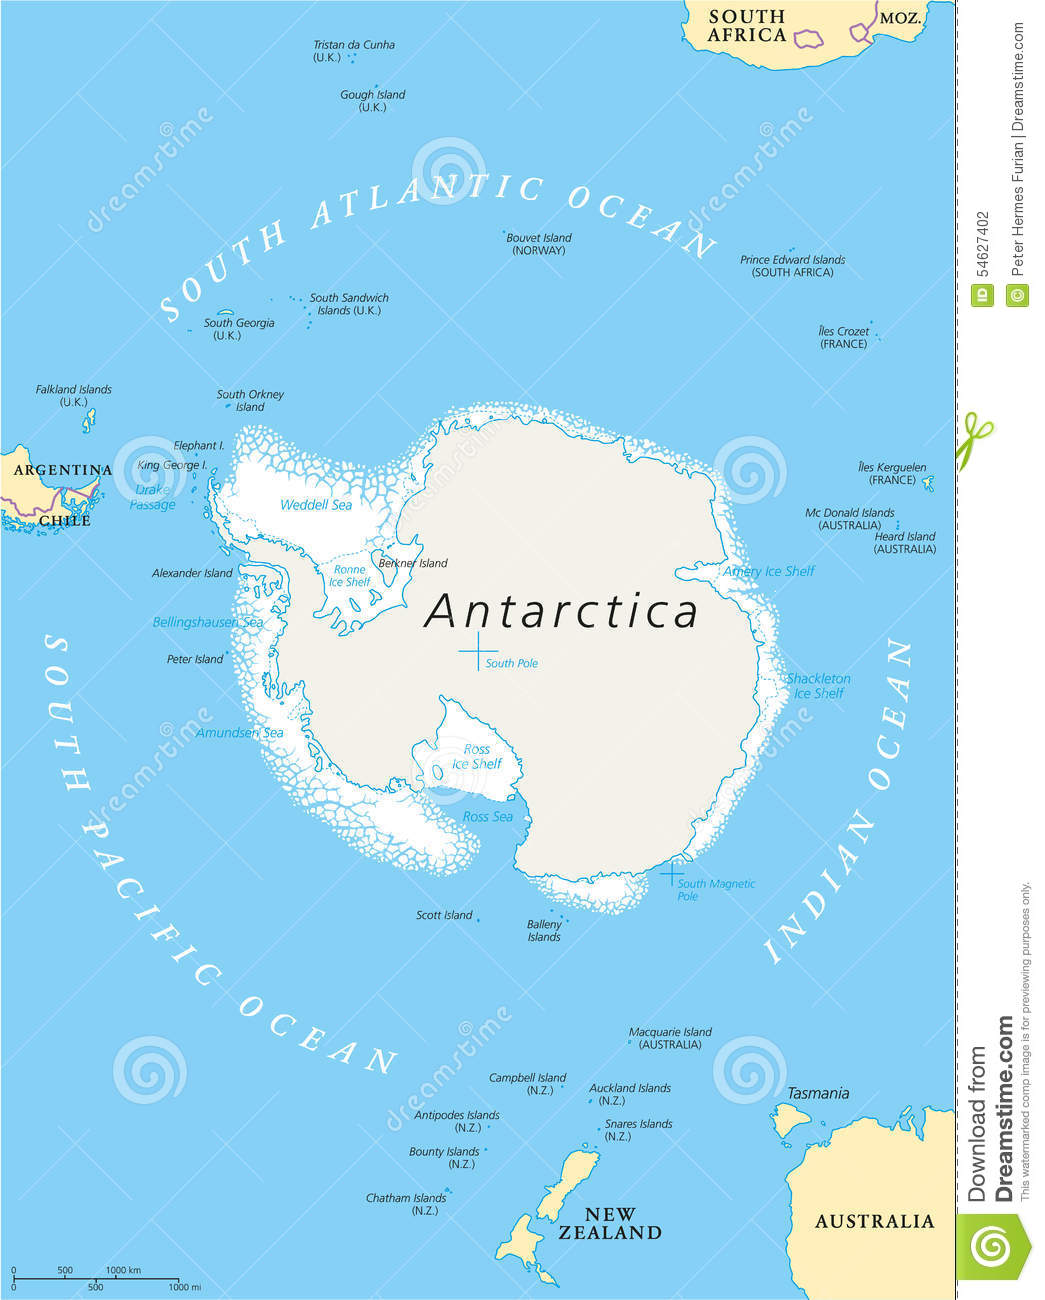 Antarctic region political map stock vector image 54627402 royalty free vector sciox Images